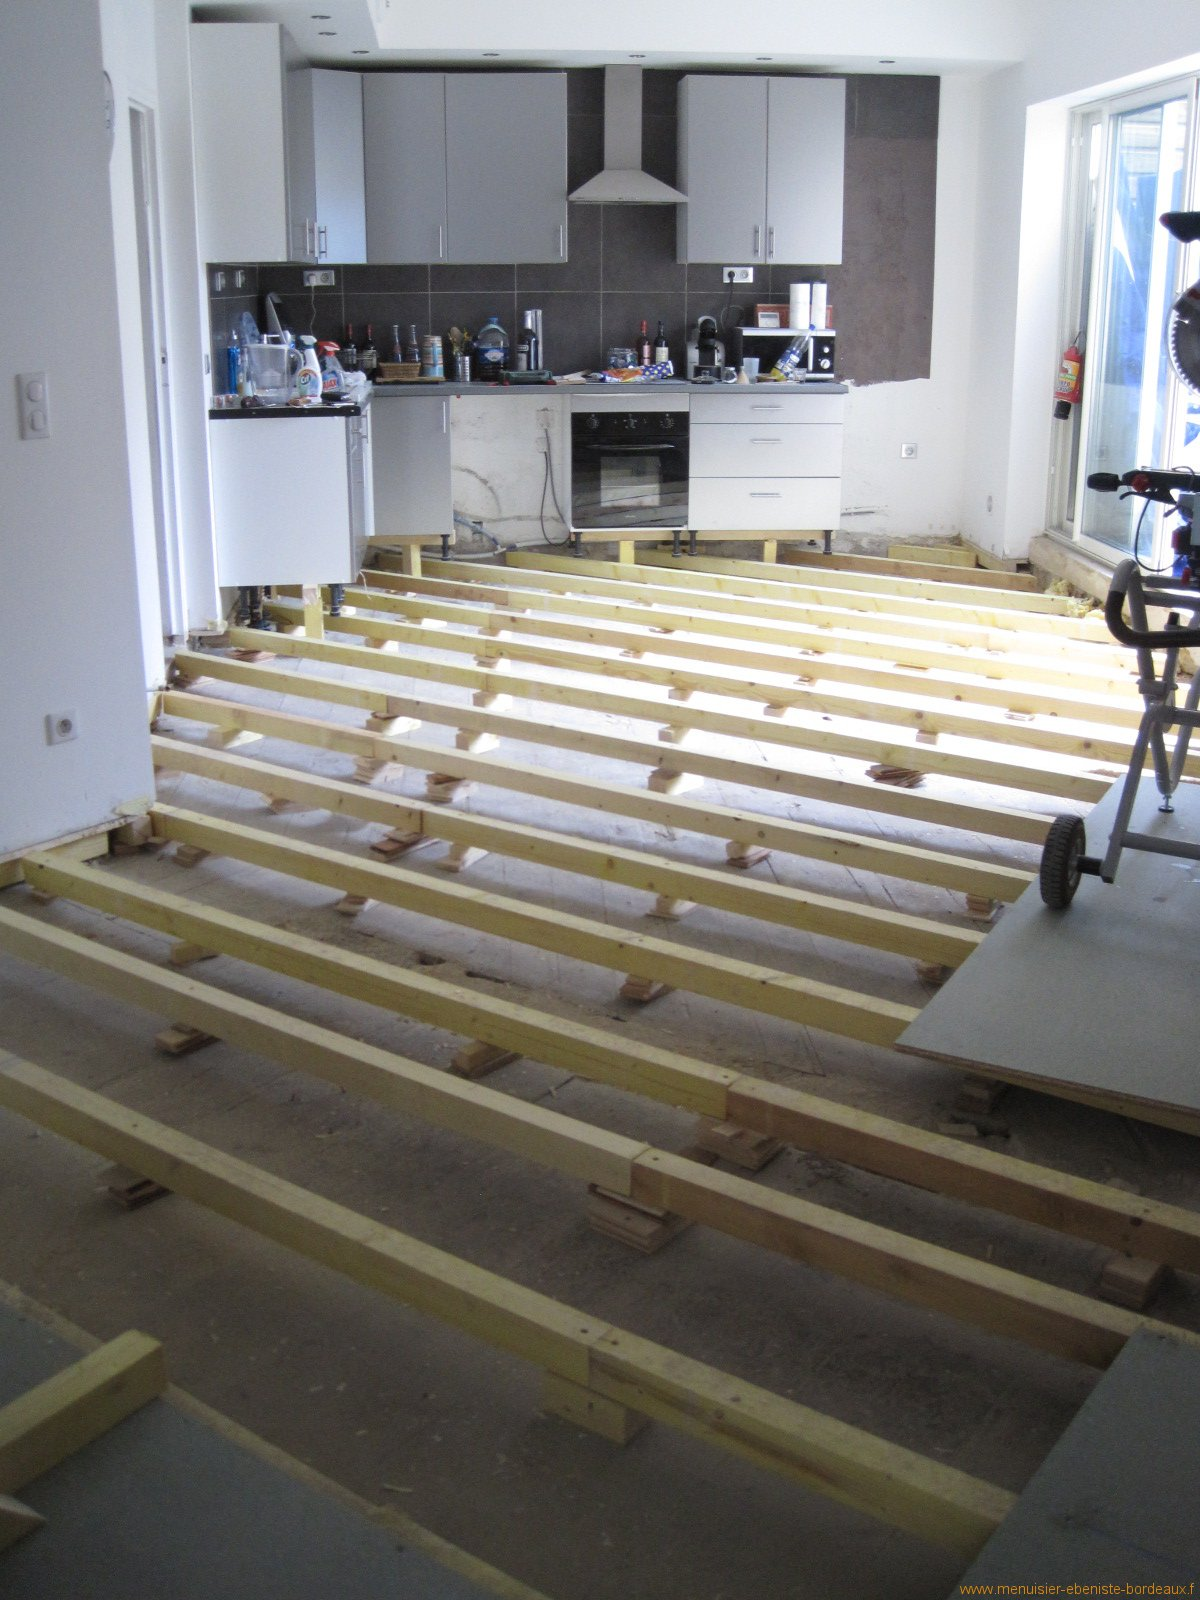 Parquet bois veritable devis renovation salle de bain for Sens pose parquet stratifie